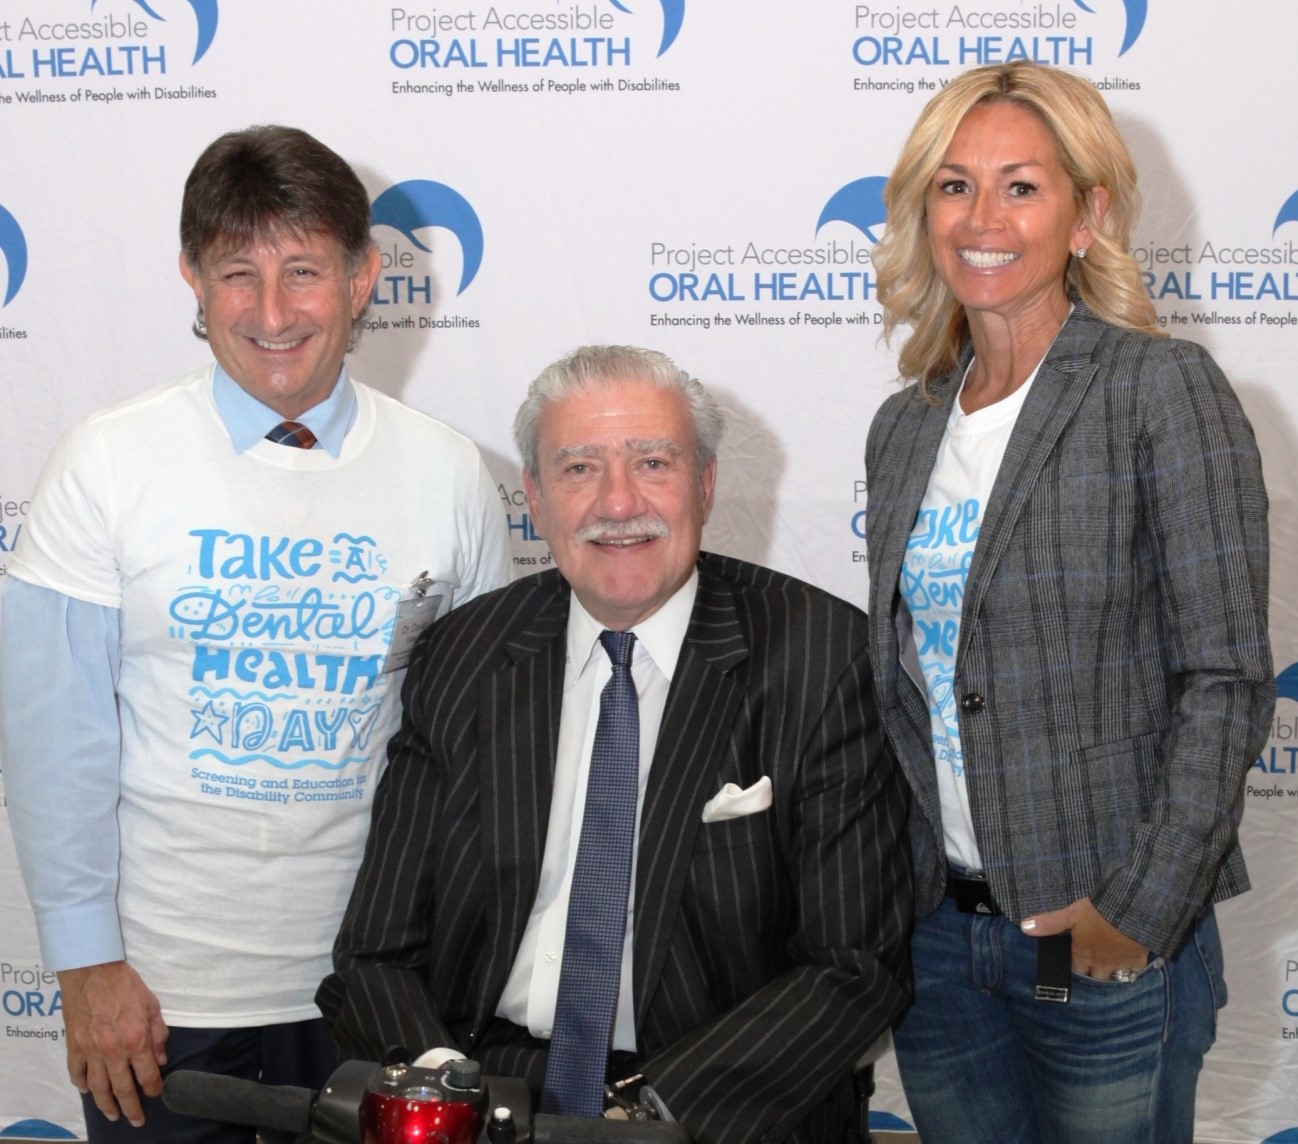 """[L-R] Dr. David Miller, President, Special Care Dentistry Association and Project Accessible Oral Health Board Member, joins together with President & CEO of The Viscardi Center and Chairman of Project Accessible Oral Health  John D. Kemp, and Project Acessible Oral Health Executive Director Barbie Vartanian to launch """"Take a Dental Health Day - Screening and Education for the Disability Community, """" on Friday, October 26 at The Viscardi Center's campus in Albertson, New York."""